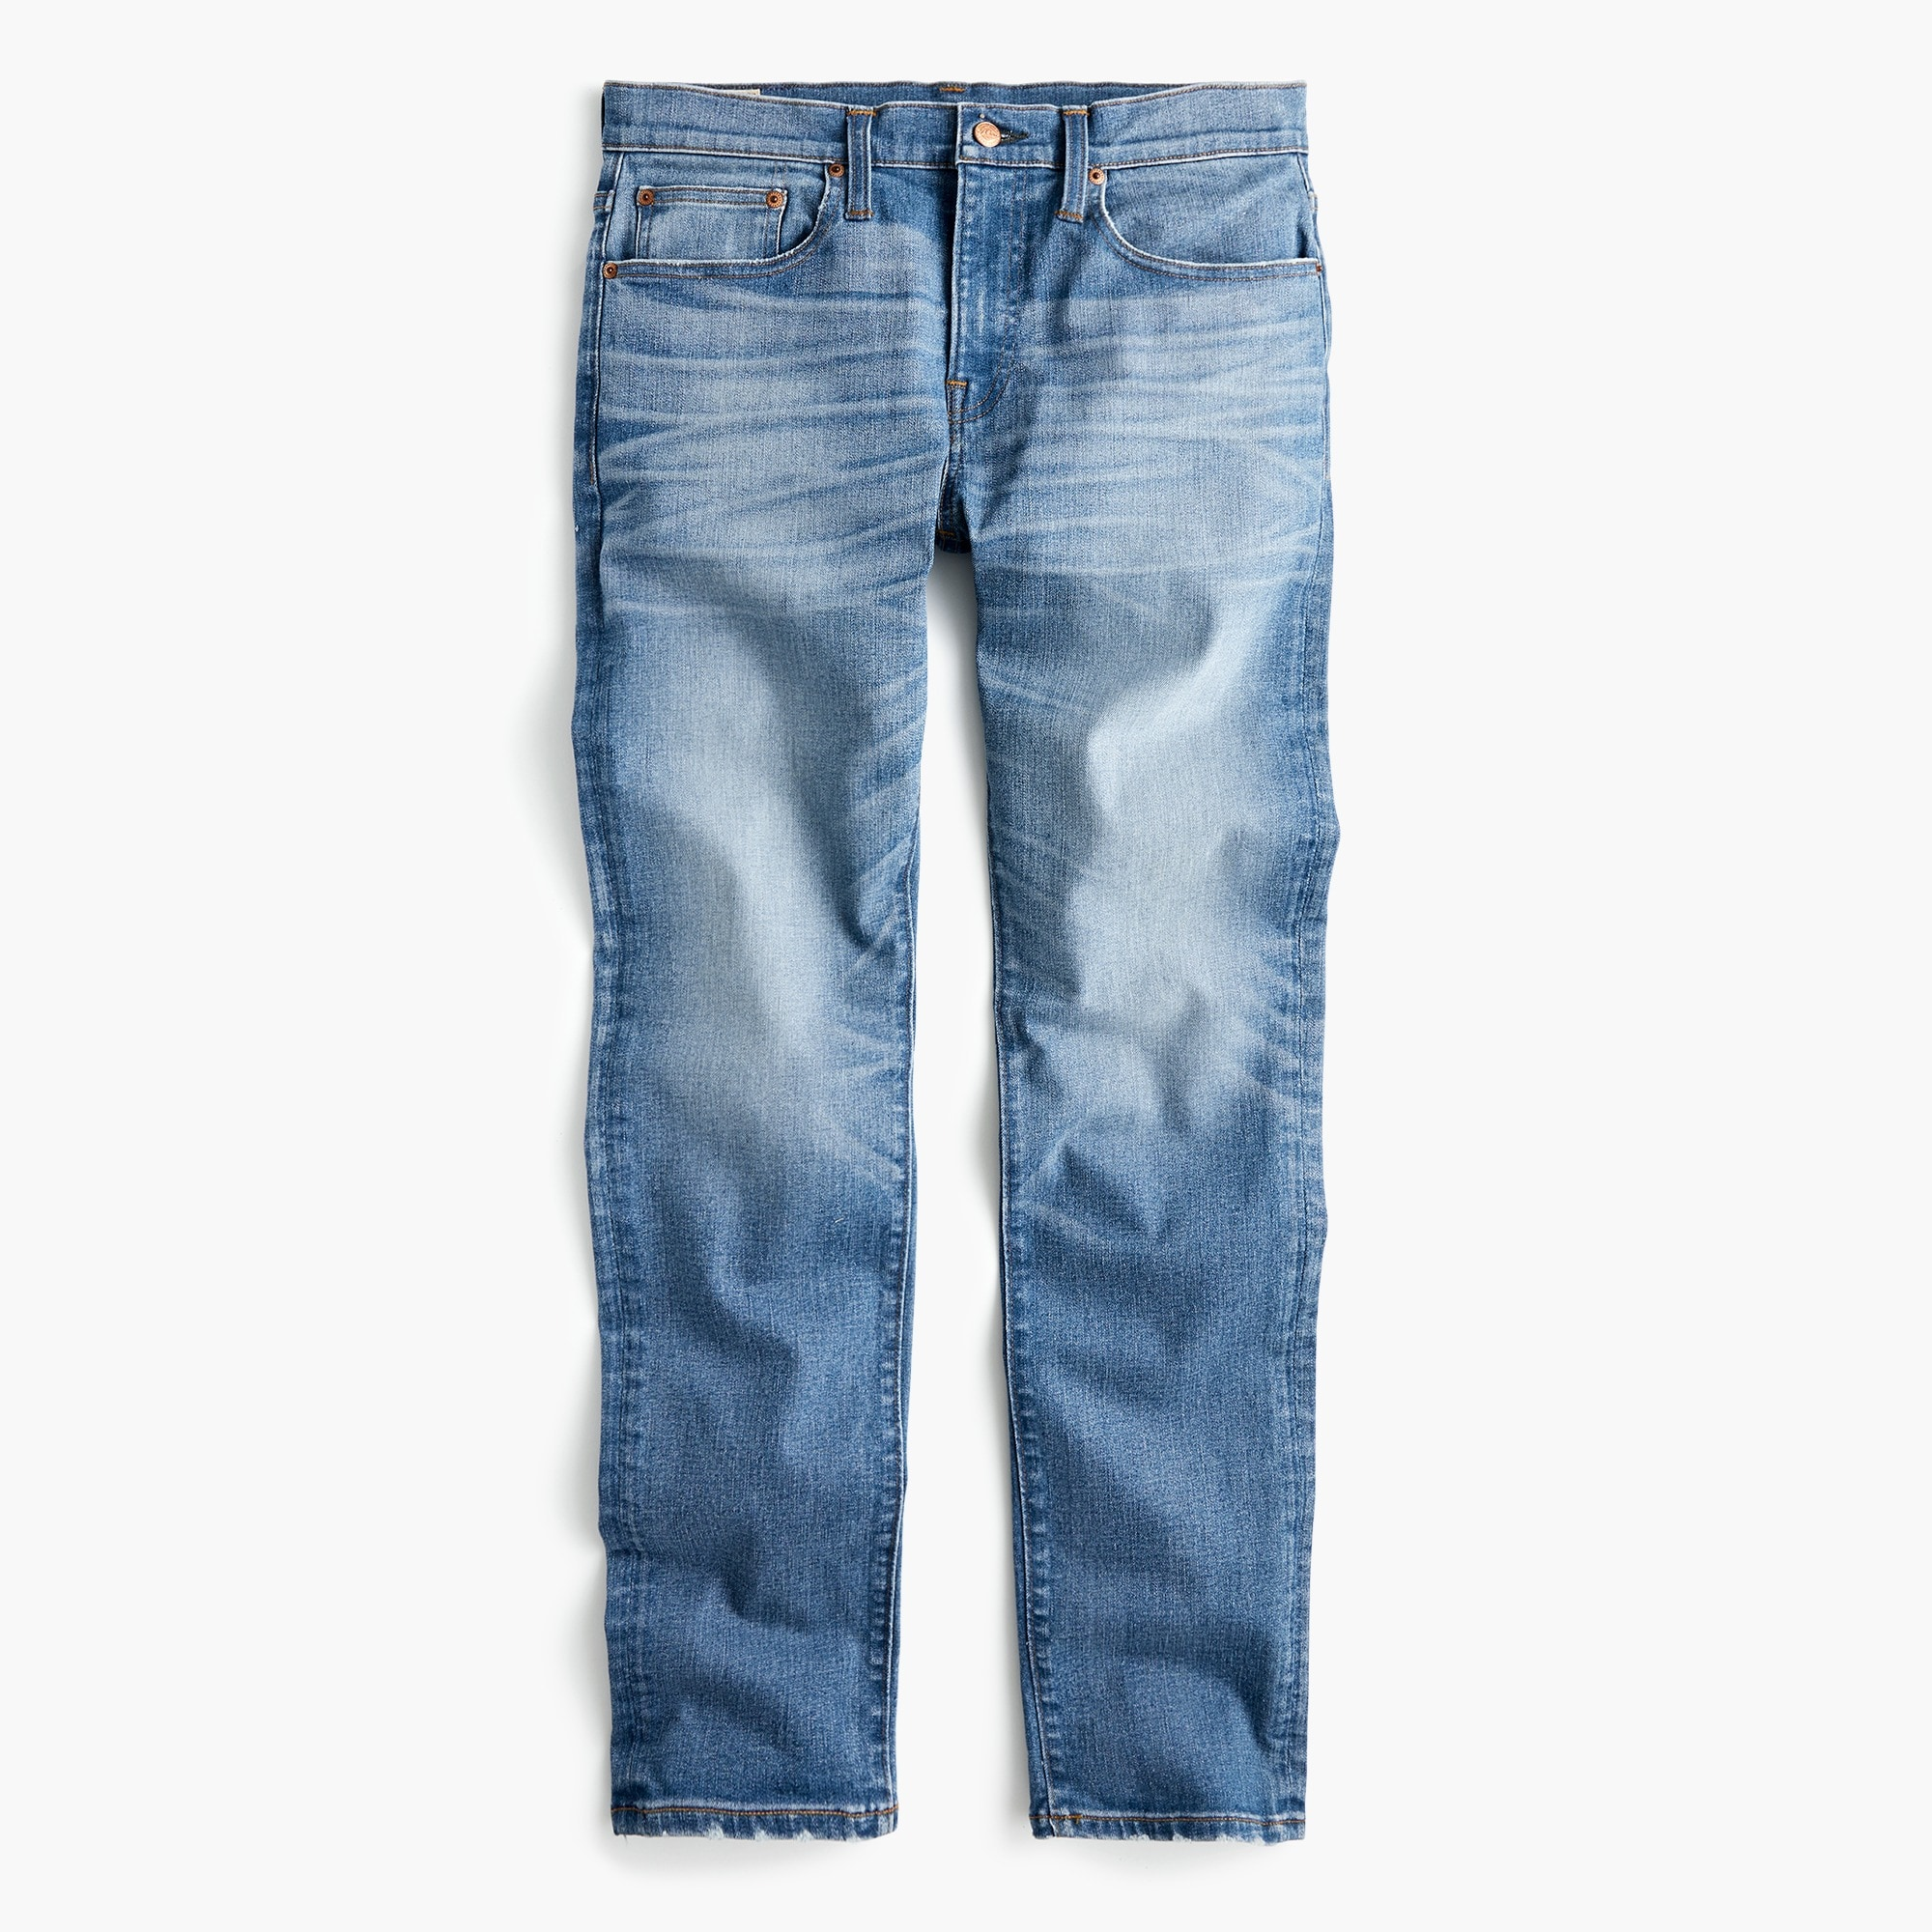 Image 1 for 484 Slim-fit distressed stretch jean in Stockton wash